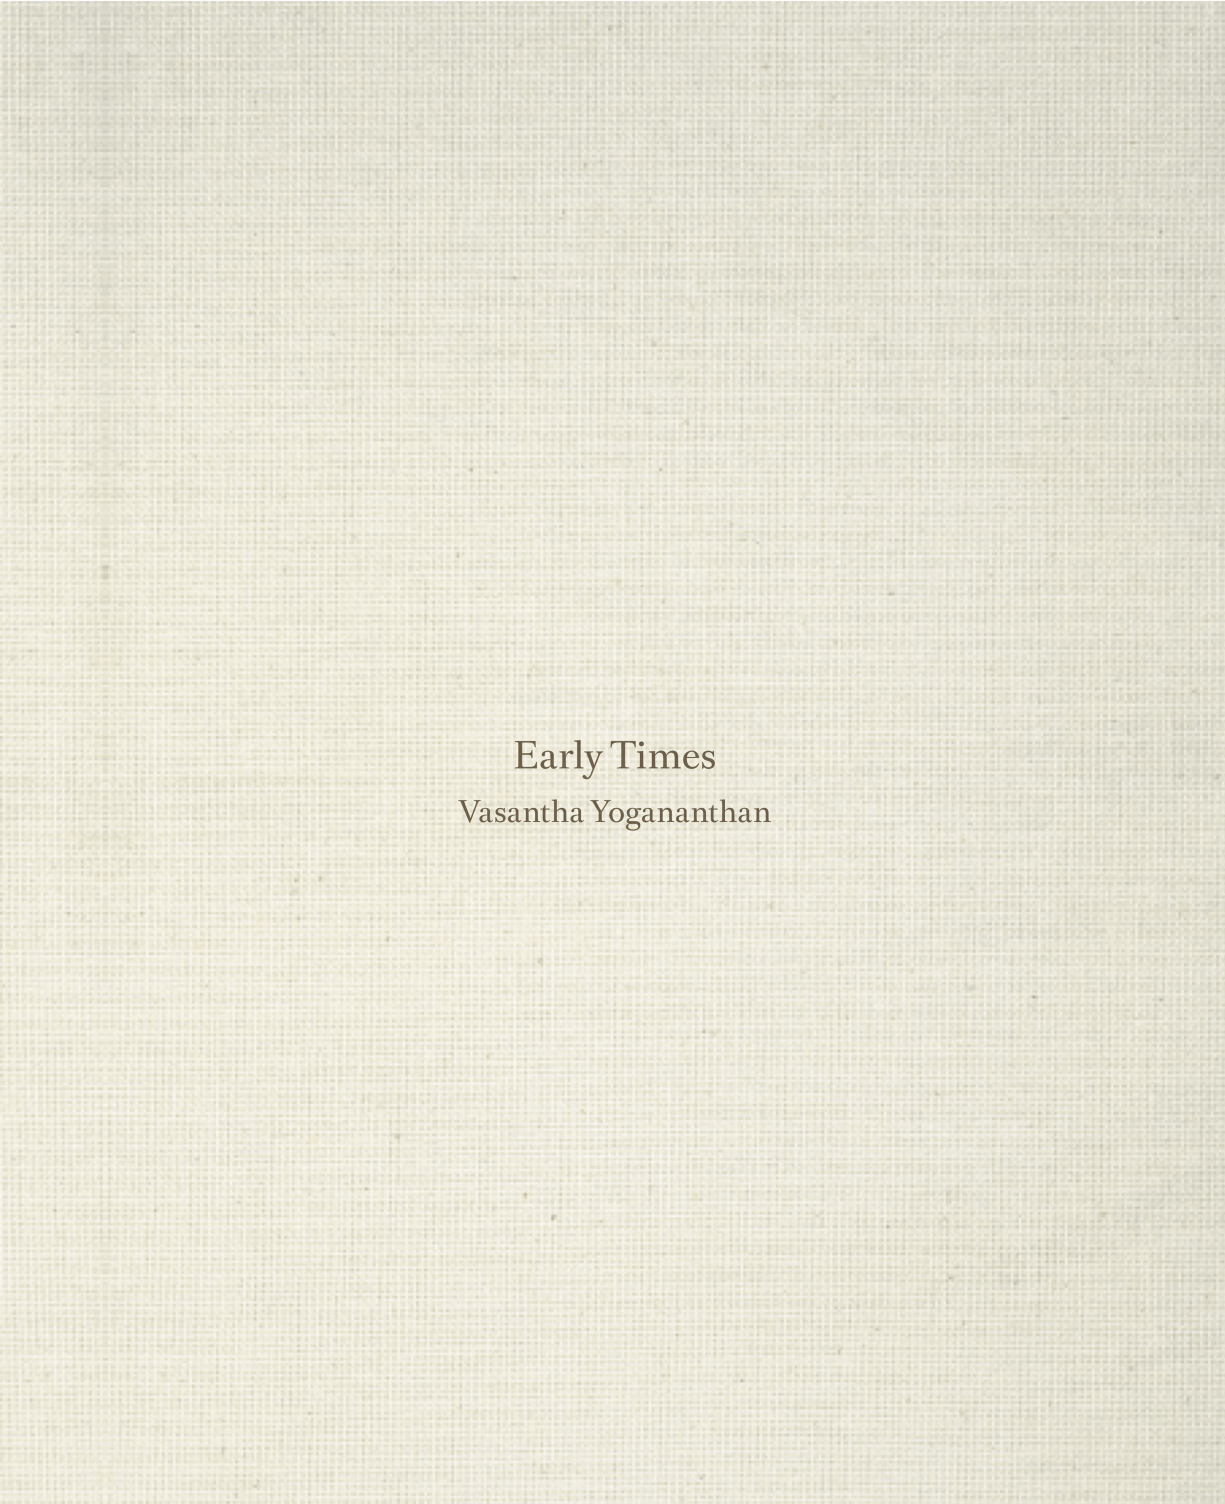 Early Times - Special edition